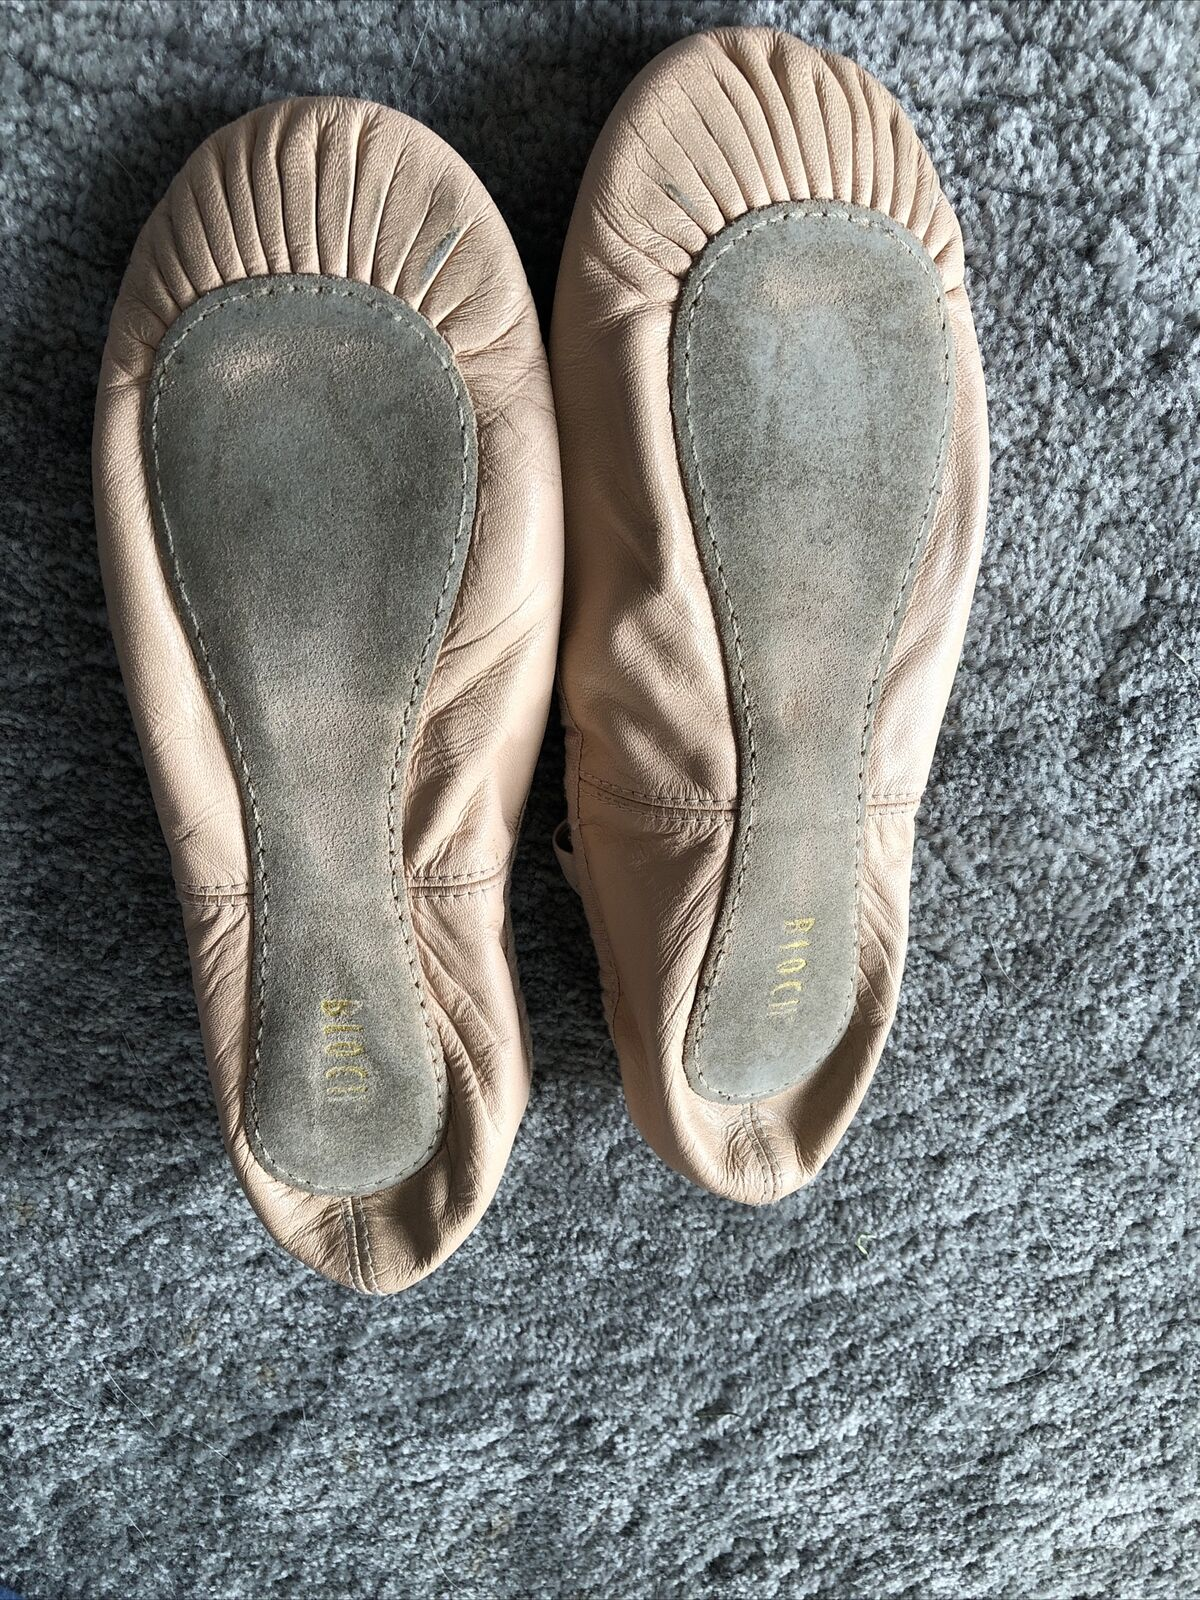 Pink Leather Bloch Ballet Dancing Shoes with strap Older Girls Ladies Size UK 5